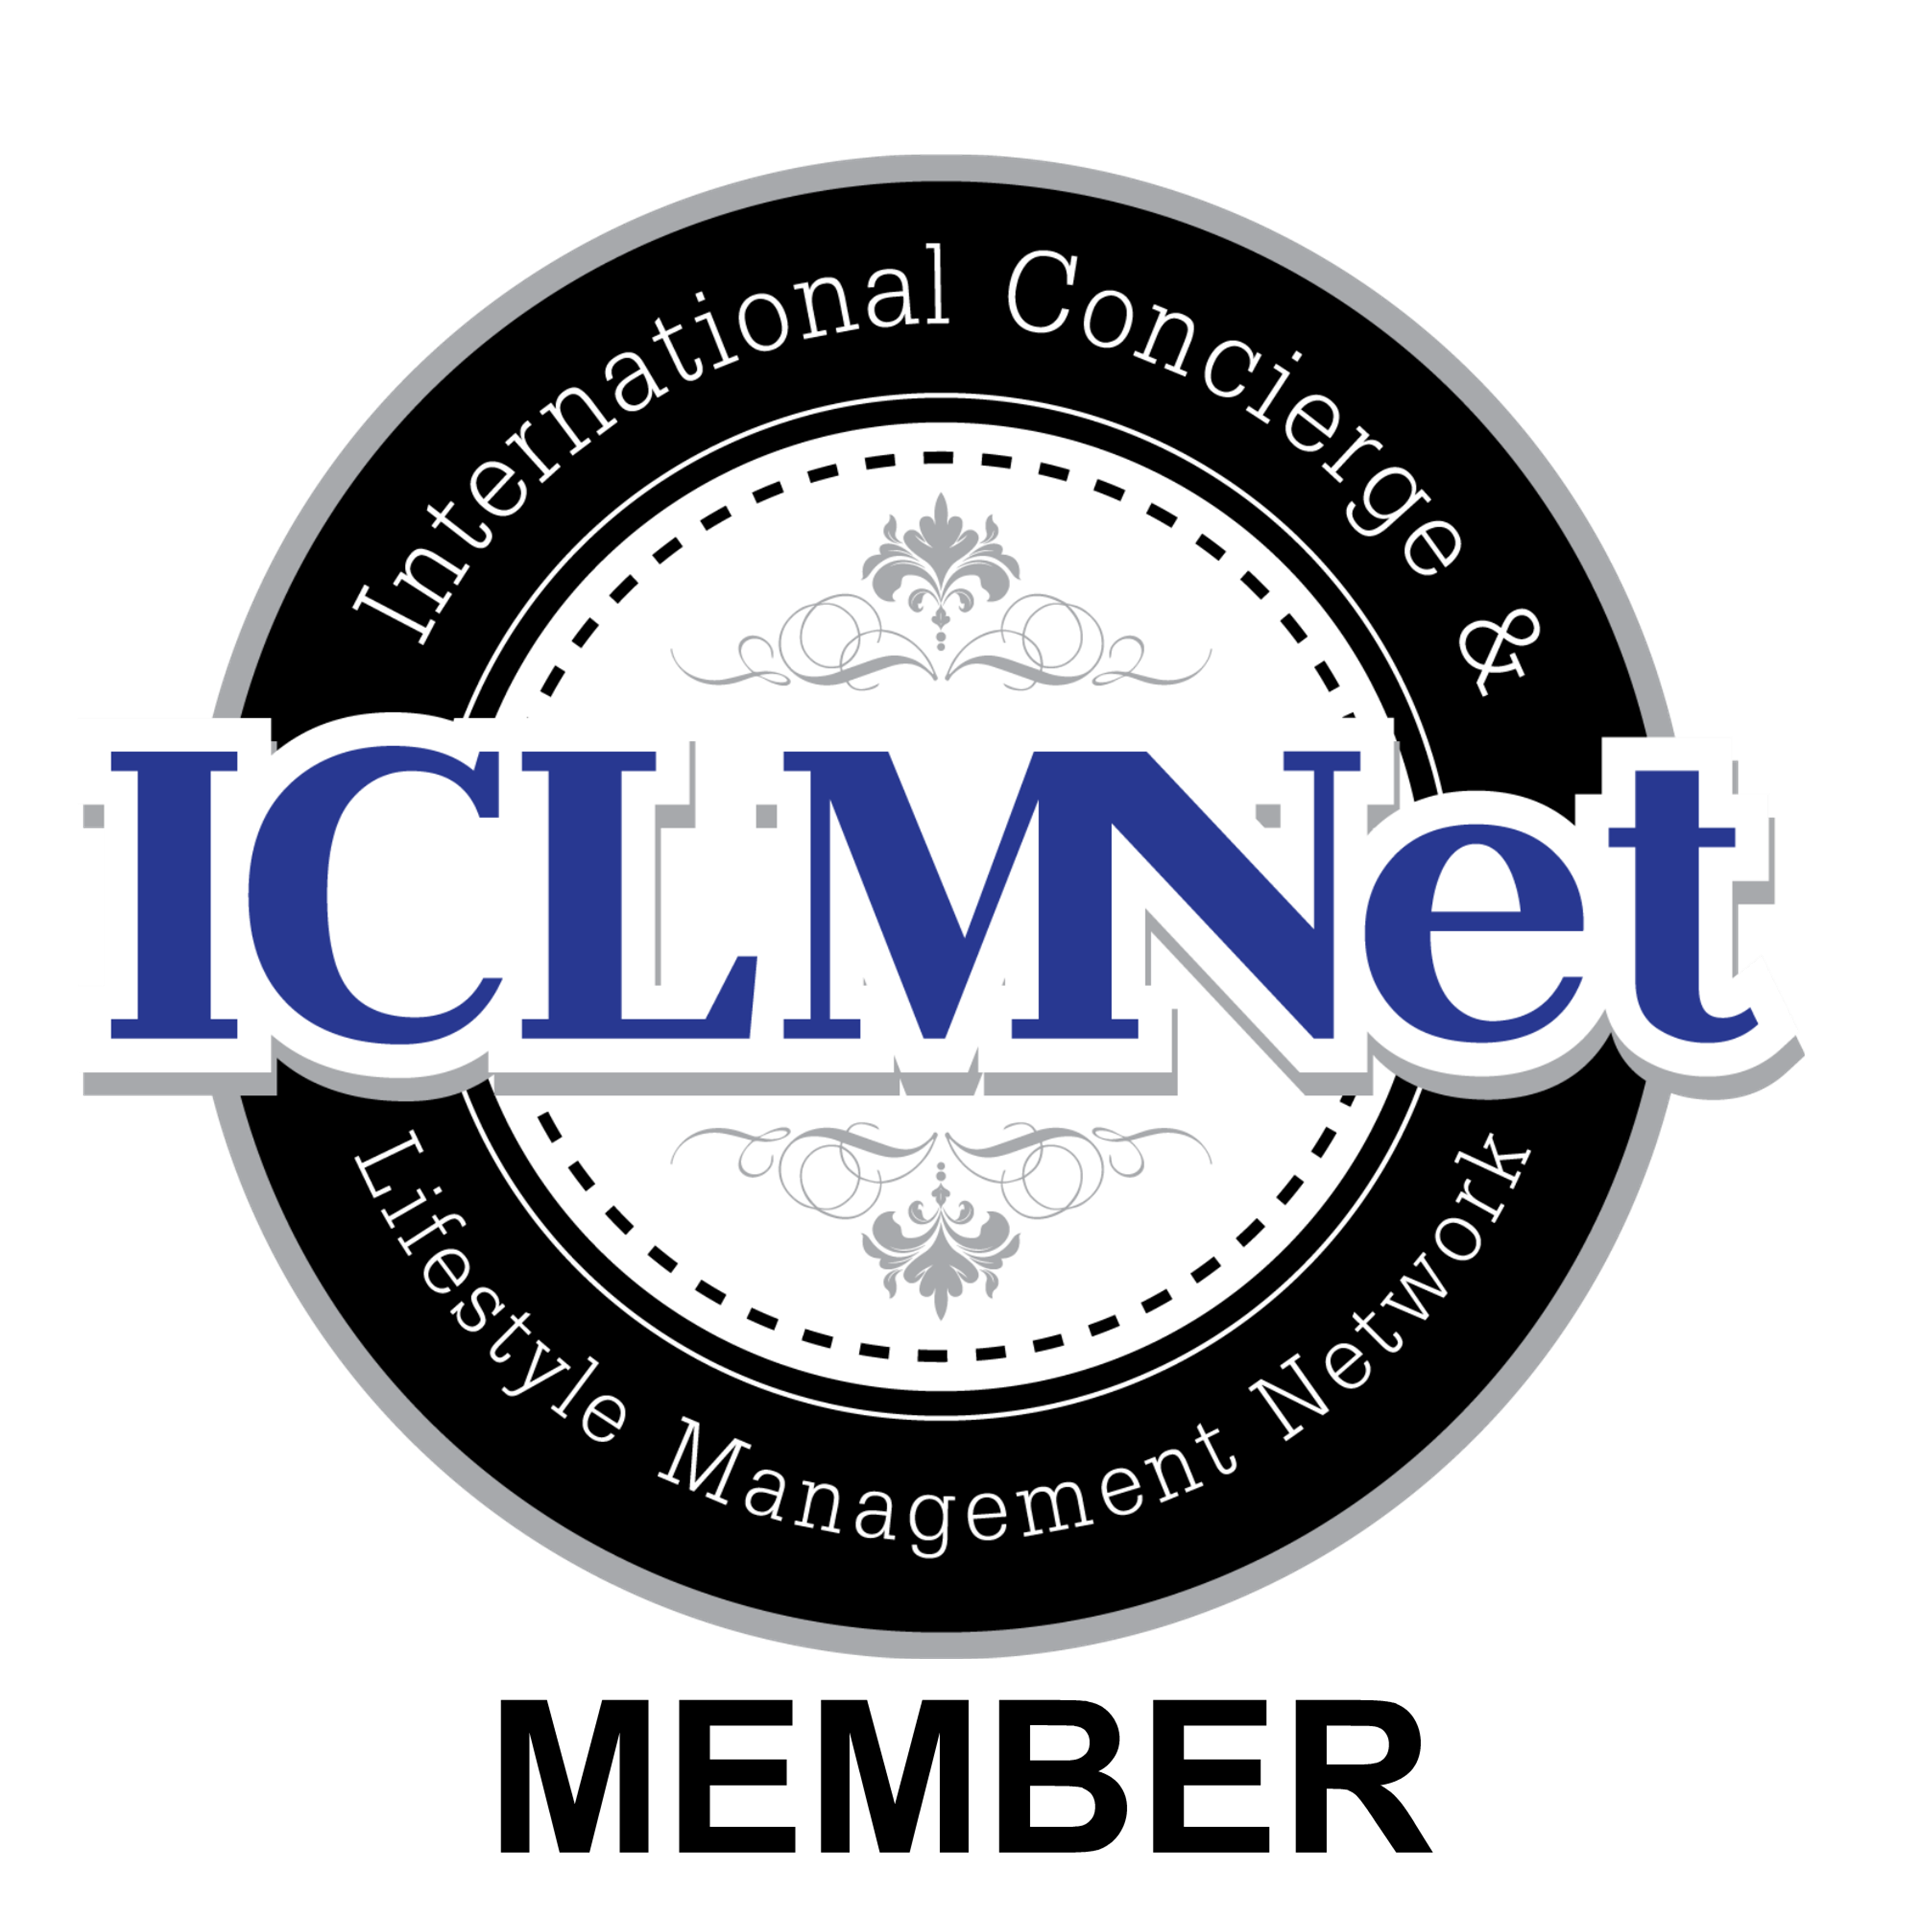 Proud Member of the ICLMNet